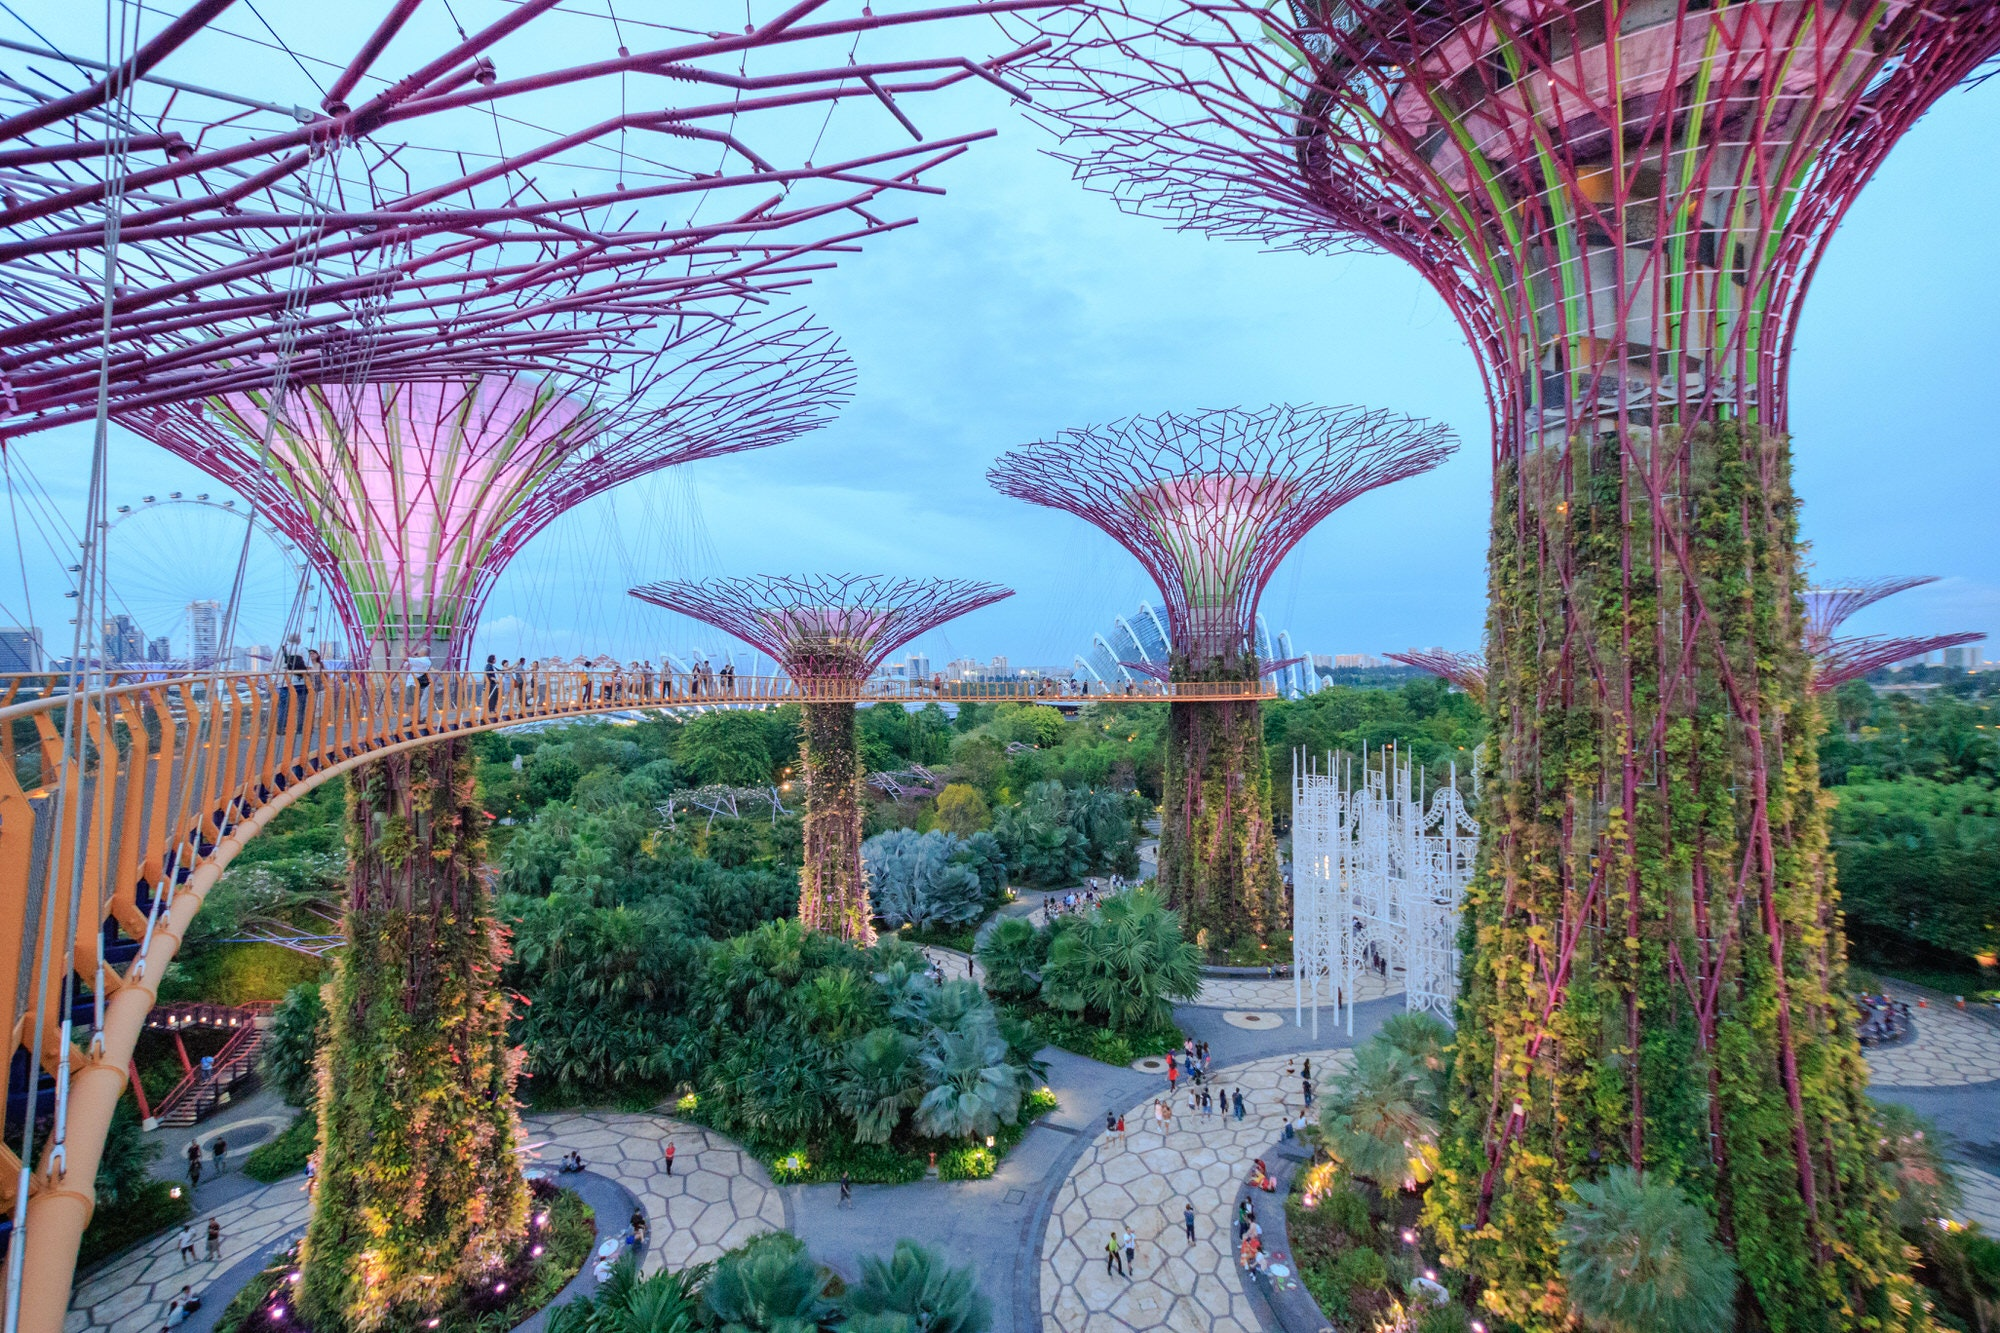 View from the walkway on The Supertree Grove at Gardens by the Bay in Singapore